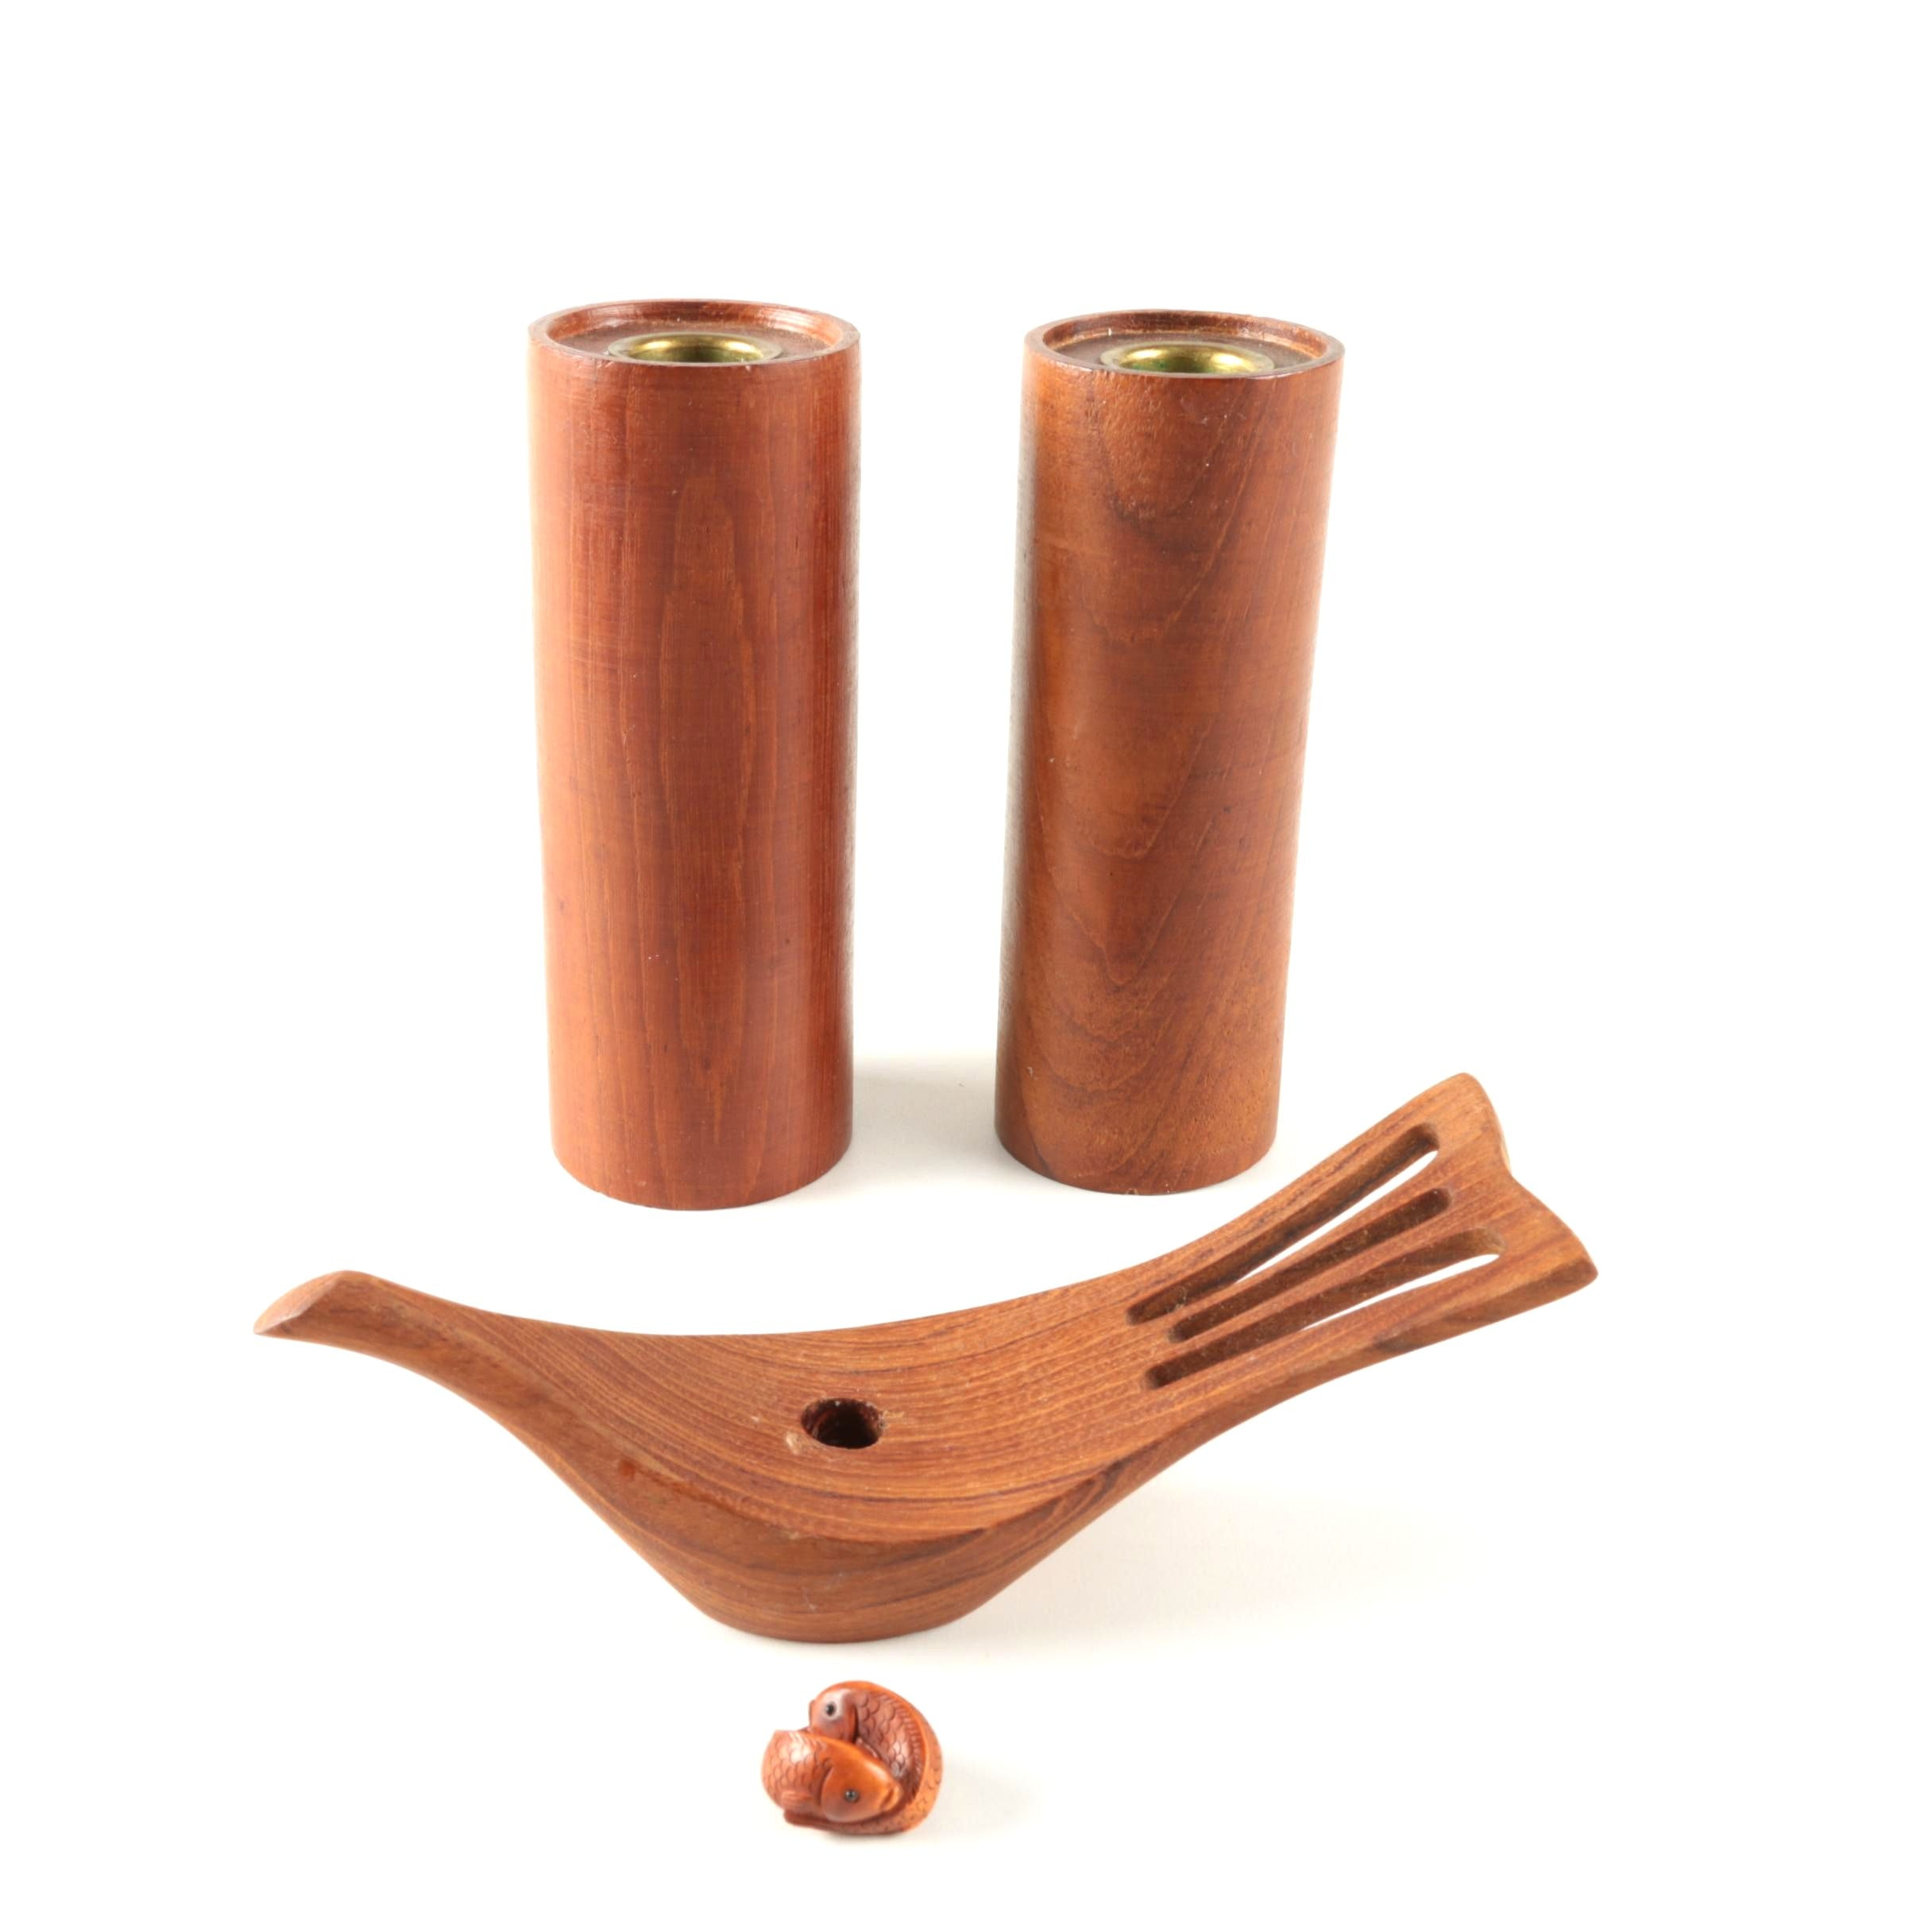 Danish Modern Wooden Candle Holders and Decor